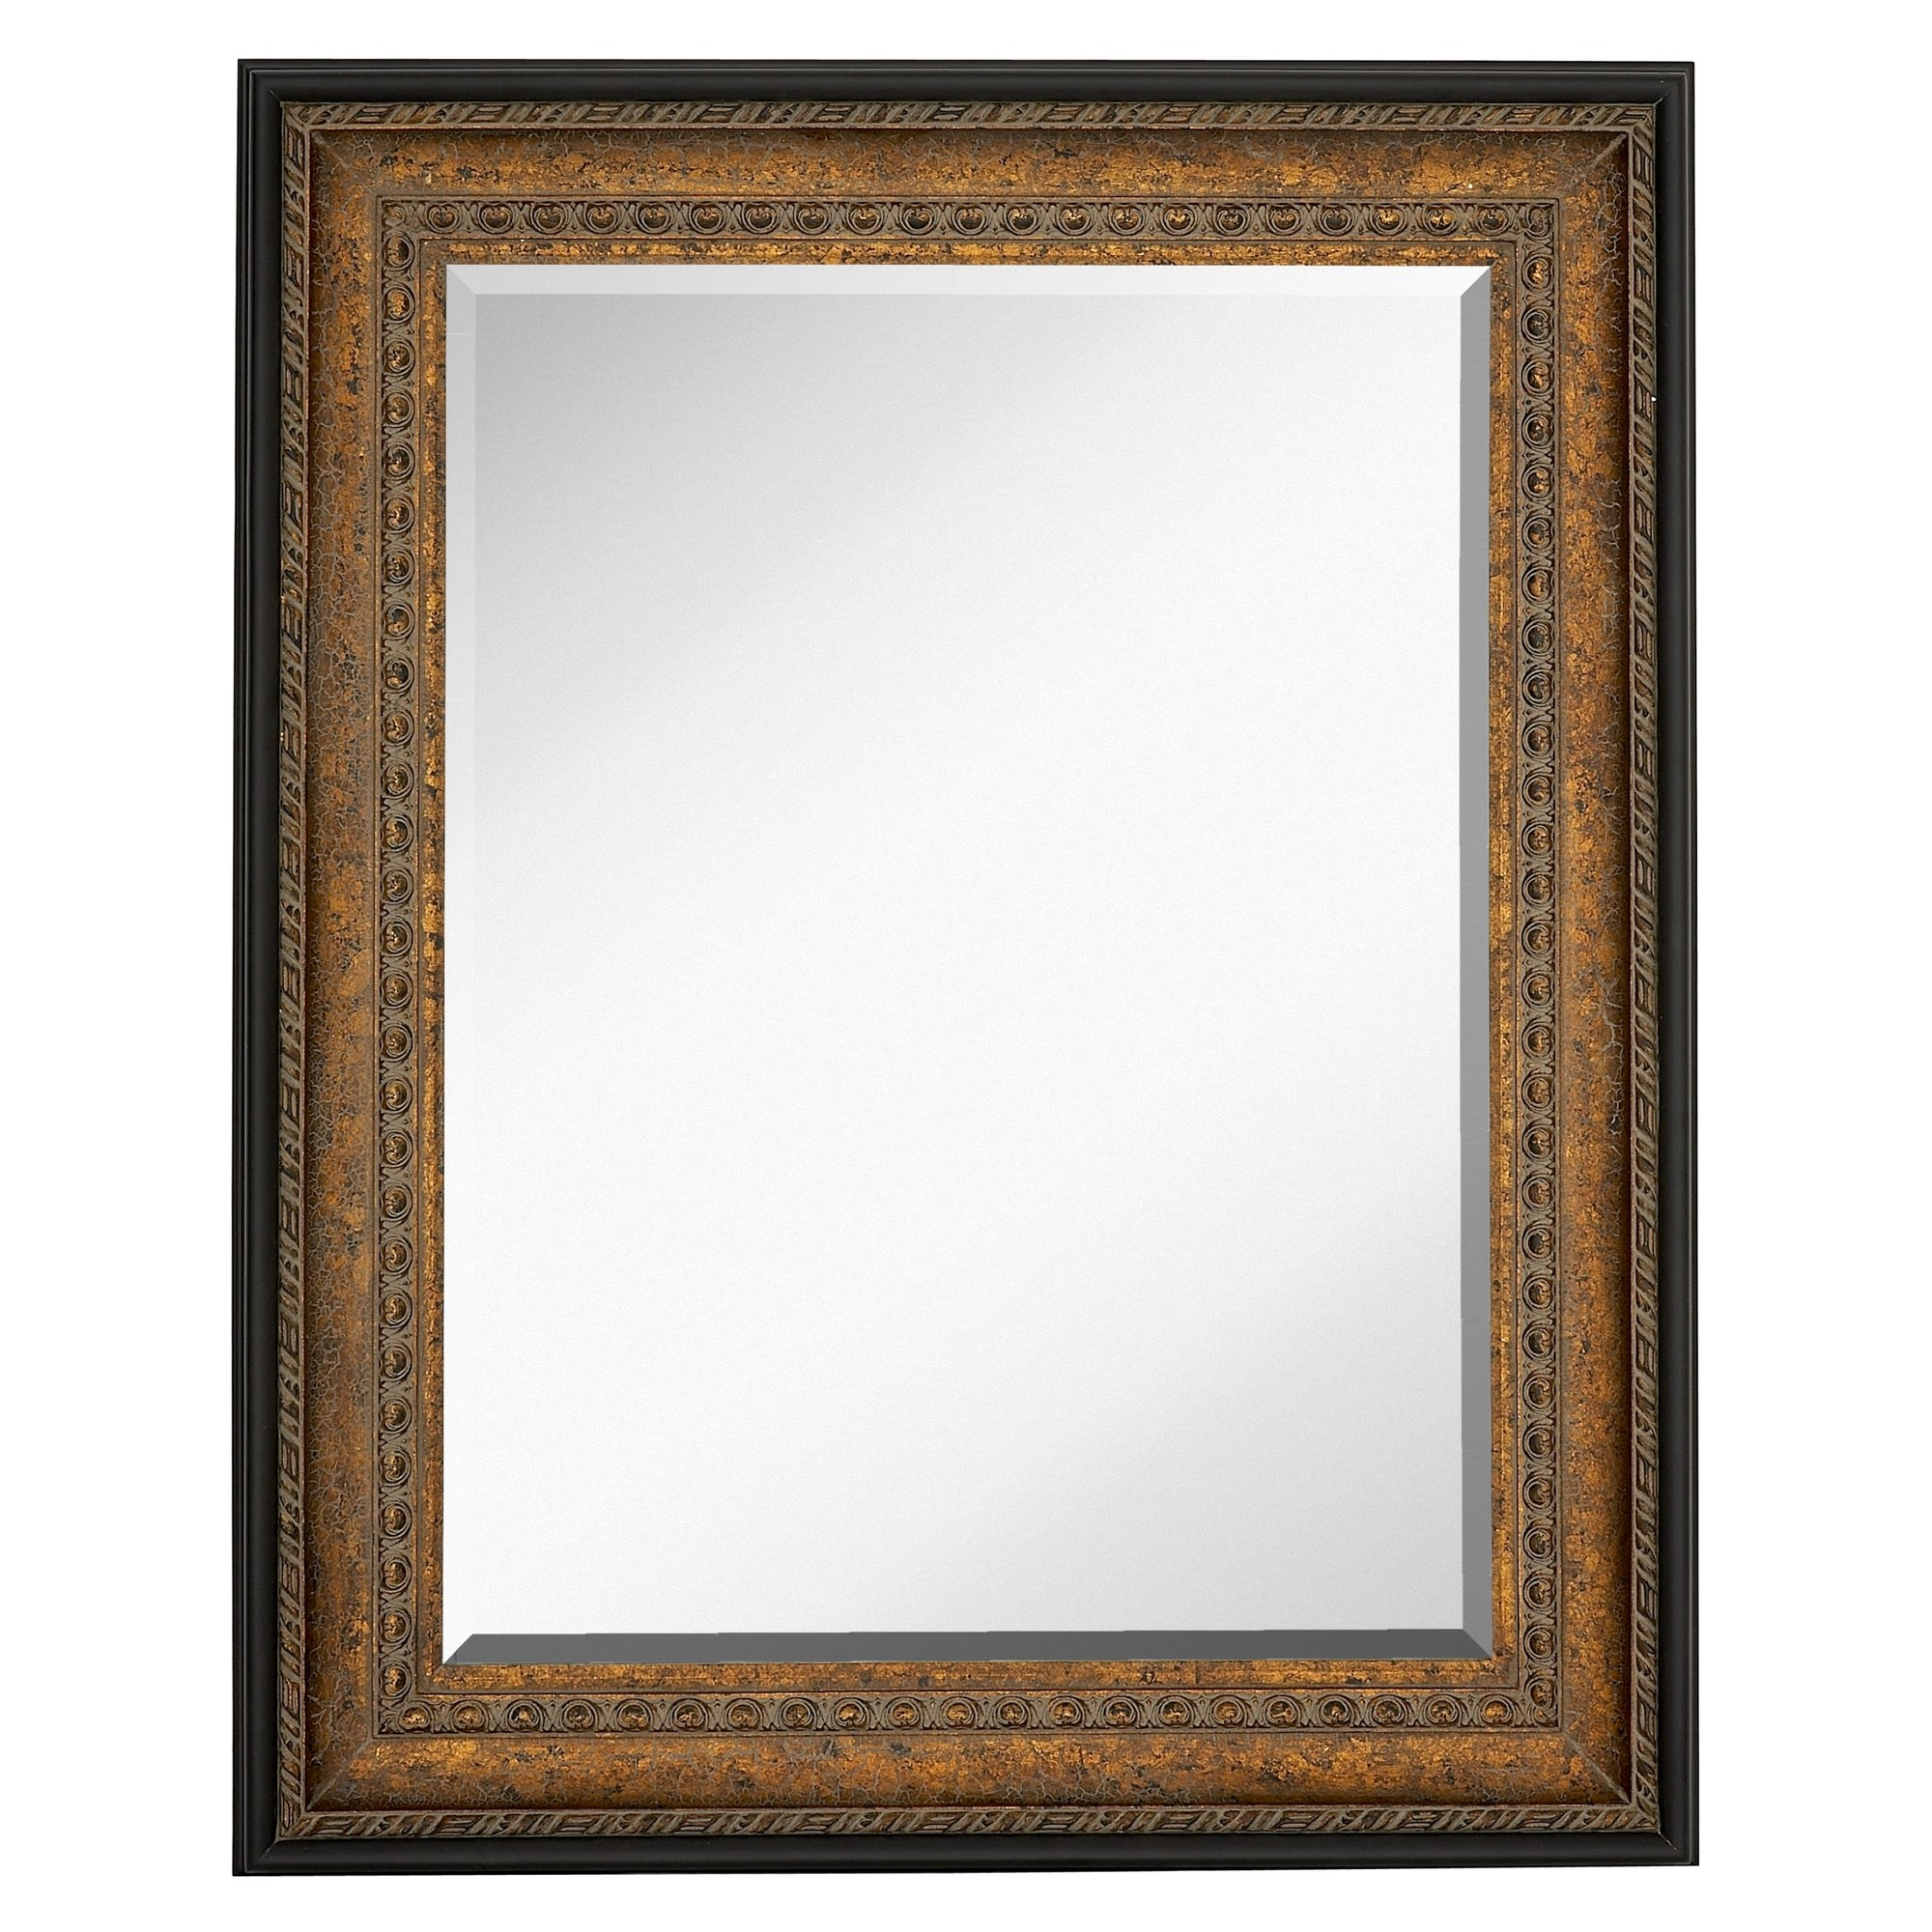 Majestic Mirror Large Rectangular Mirror With Antique Bronze With Regard To Large Bronze Mirror (View 5 of 15)